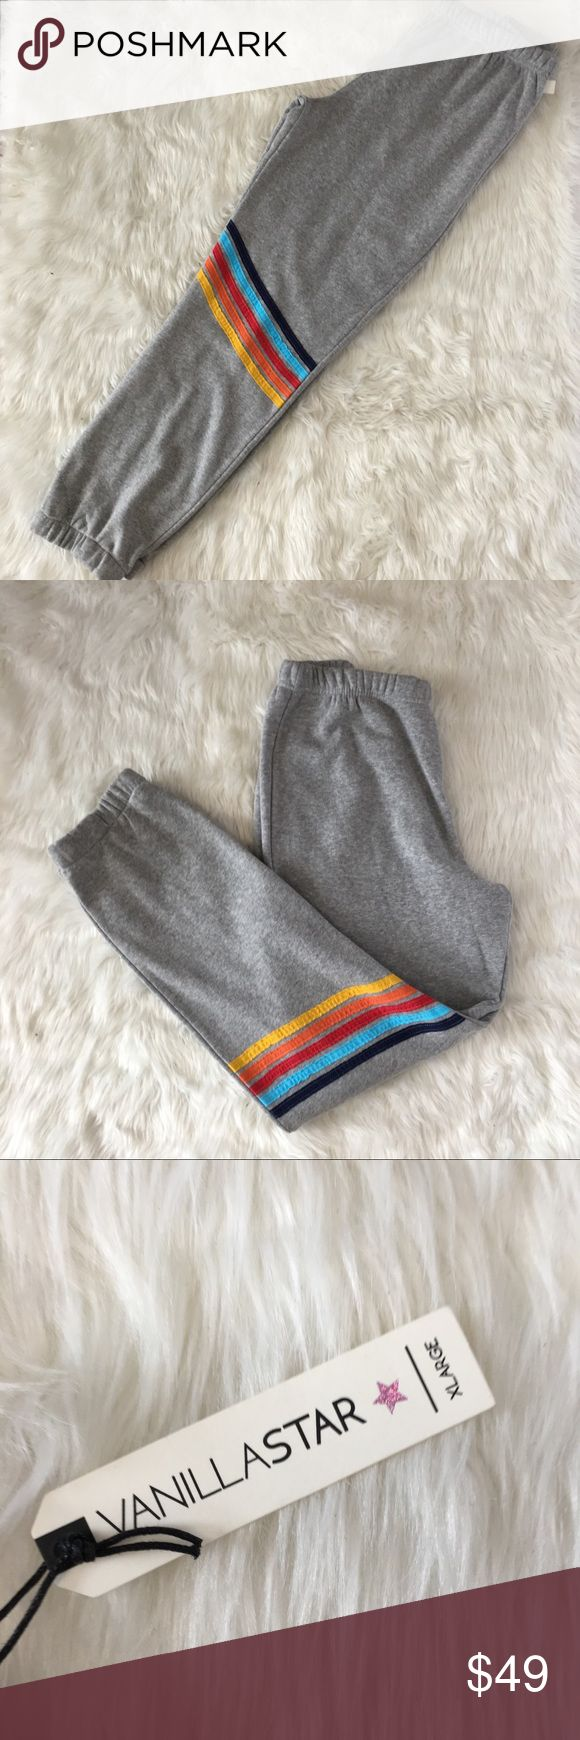 Retro Rainbow Stripe Joggers Sweatpants Vanilla Star Womens Gray Heather Retro Rainbow Stripe Joggers Sweatpants  Cotton polyester blend- Super soft ! Elastic waistband  Brand new with tags  Quick shipping! WE SHIP EITHER THE SAME BUSINESS DAY OR NEXT. ORDERS ON WEEKENDS ARE IN MAIL BY MONDAY MORNING. Vanilla Star Pants Track Pants & Joggers